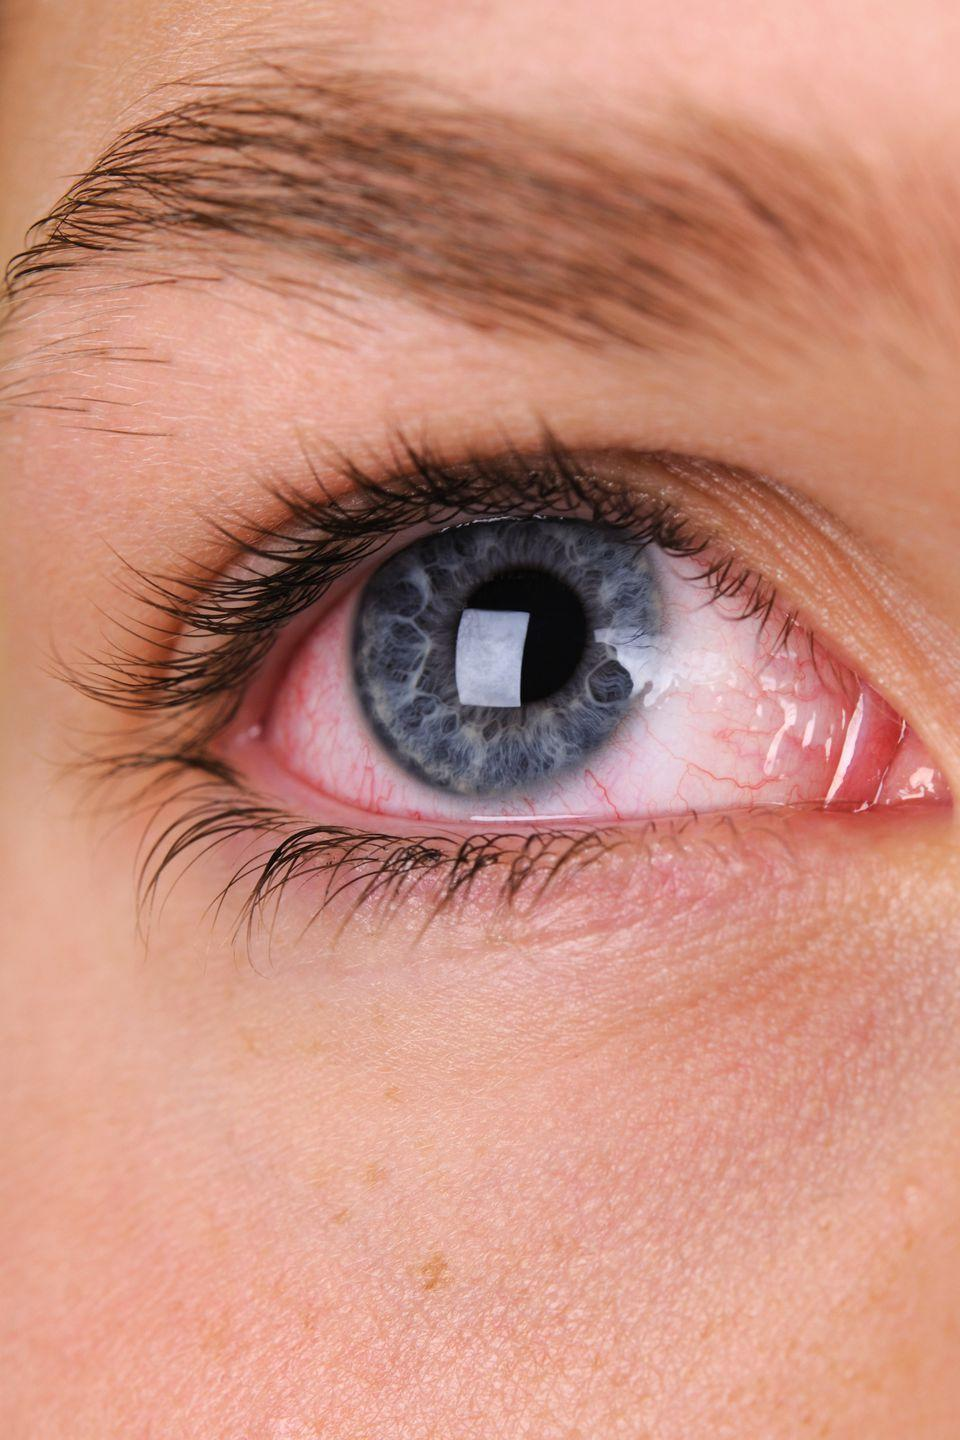 """<p>Broken blood vessels may look alarming, but for the most part they're simply an indication that your eyes are working overtime. """"It most likely is caused <a rel=""""nofollow noopener"""" href=""""https://www.womansday.com/food-recipes/a57427/cough-cure-chocolate/"""" target=""""_blank"""" data-ylk=""""slk:by coughing"""" class=""""link rapid-noclick-resp"""">by coughing</a> or straining,"""" Dr. Herz explains. """"Even though it looks blood-red and terrible, it is harmless and not indicative of any eye disease.""""<br></p>"""